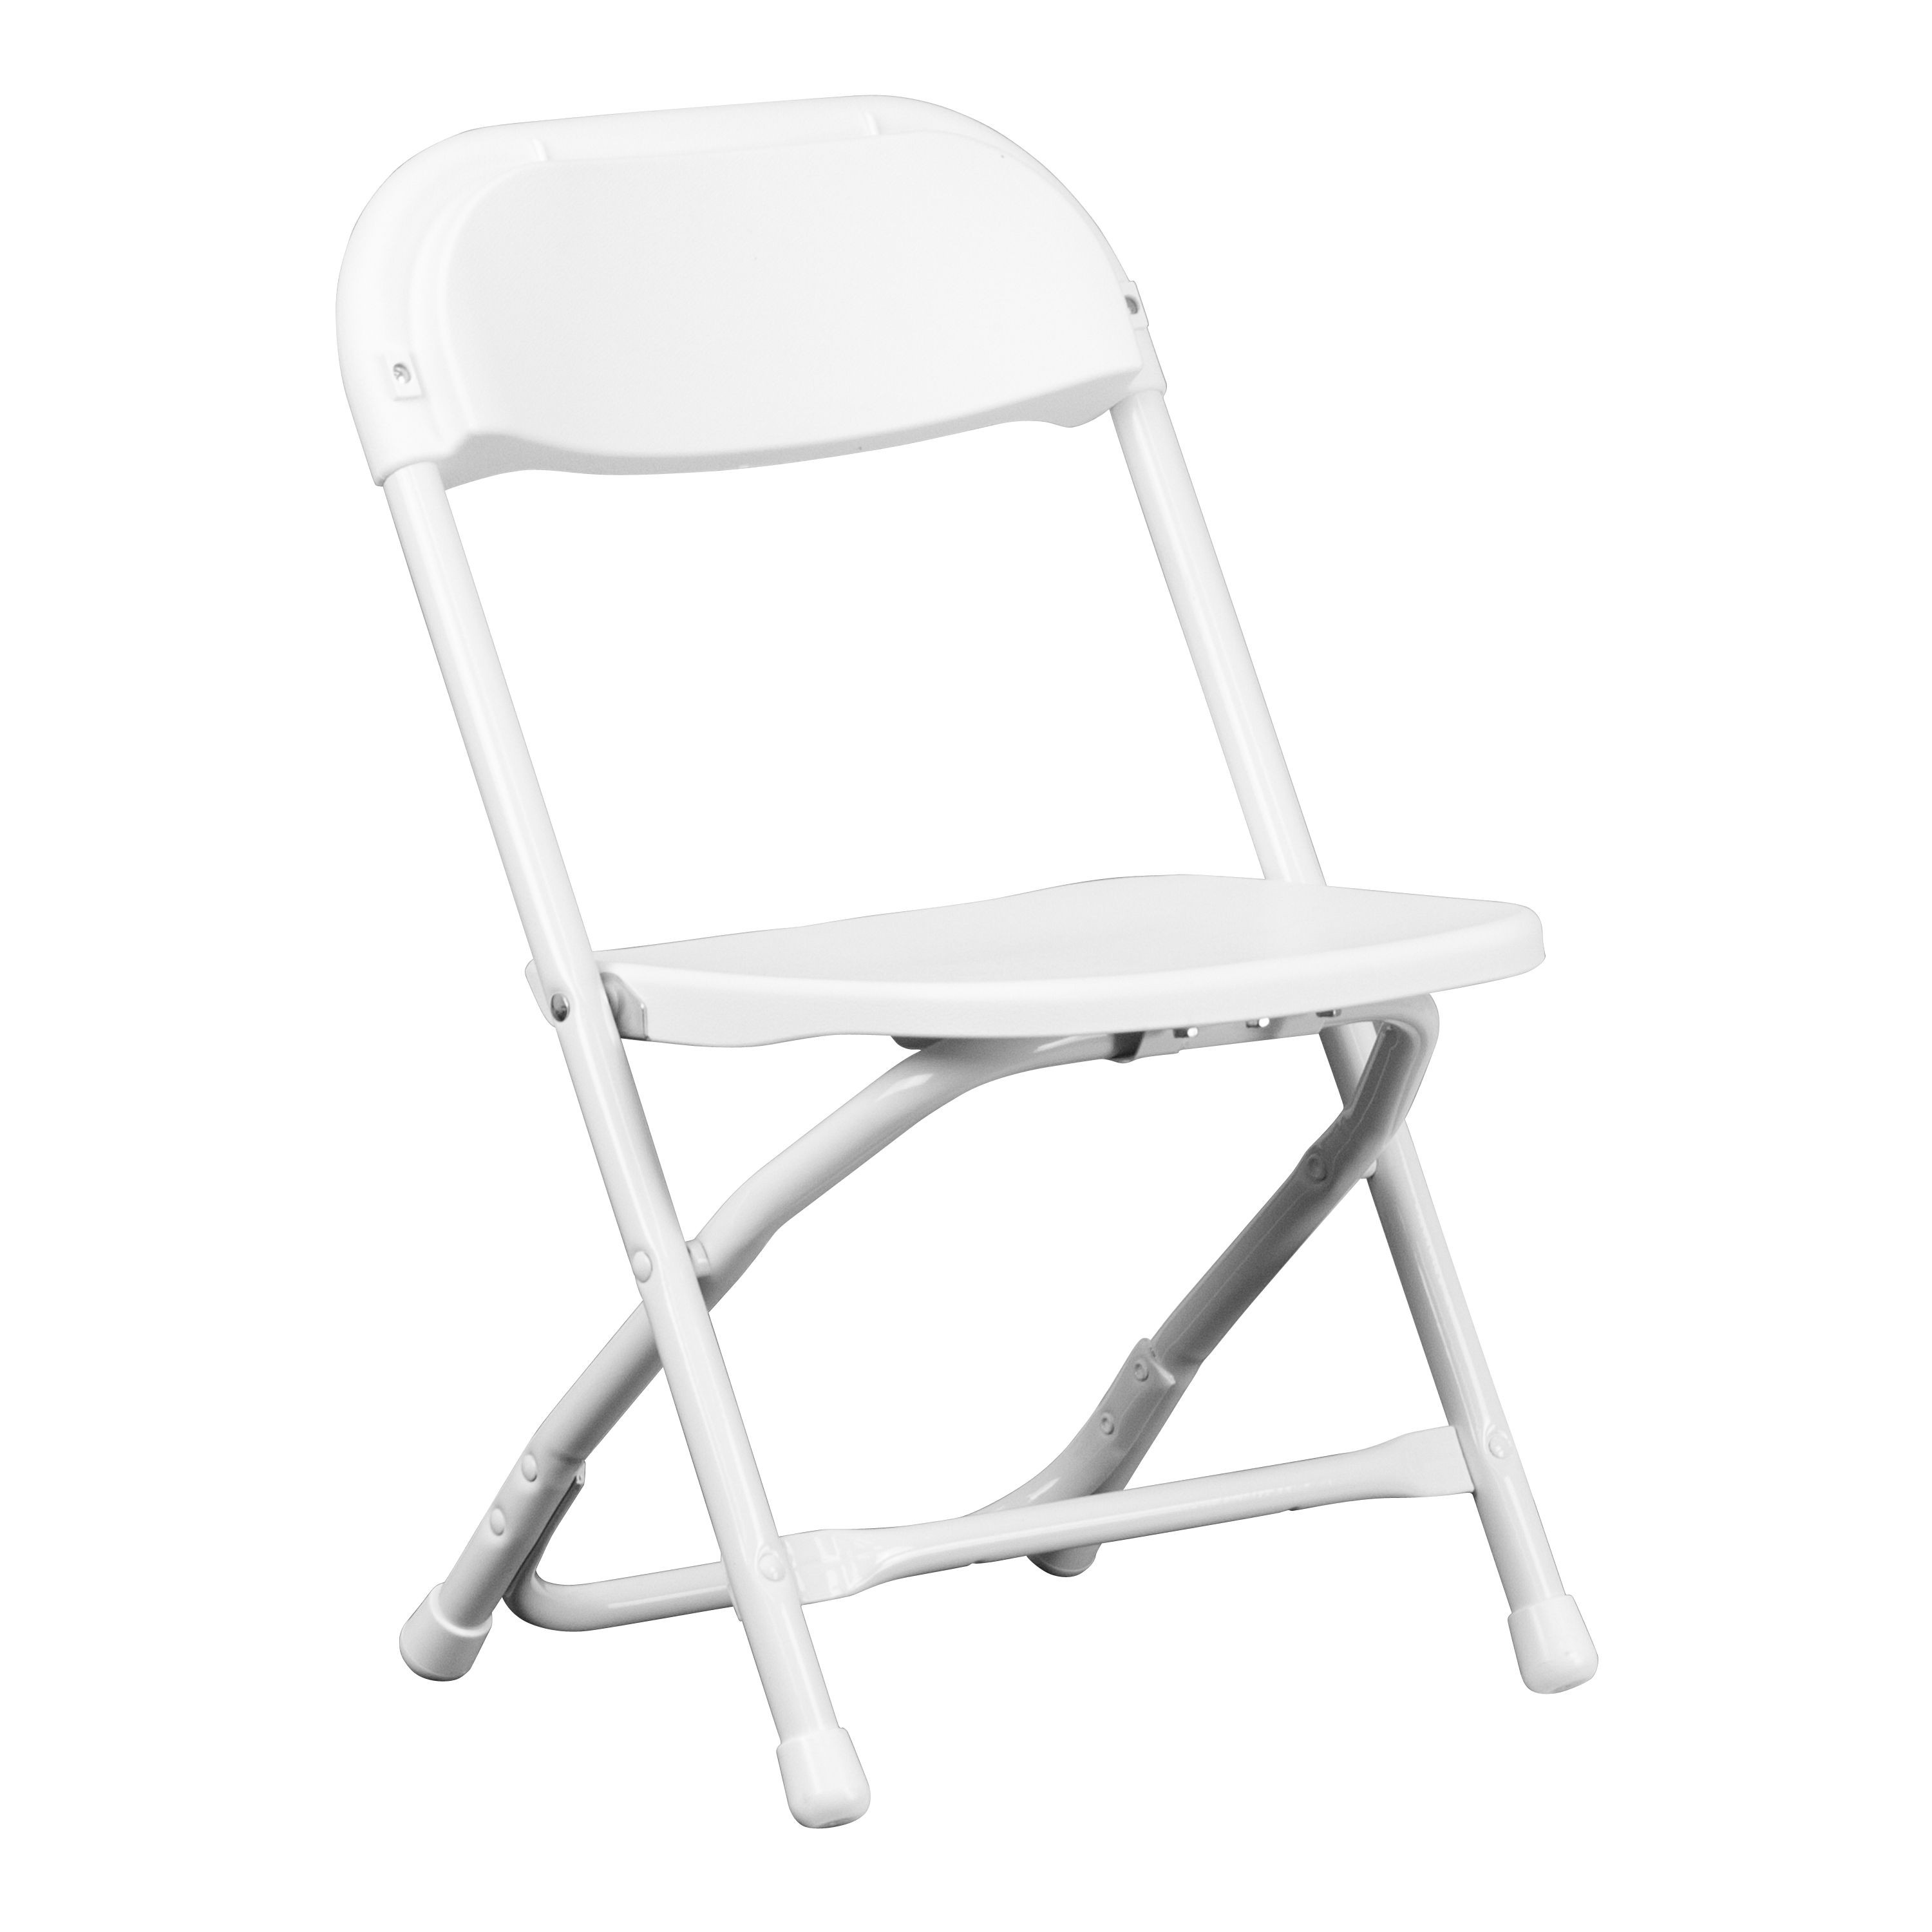 Folding White Chairs Flash Furniture Y Kid Wh Gg Kids White Plastic Folding